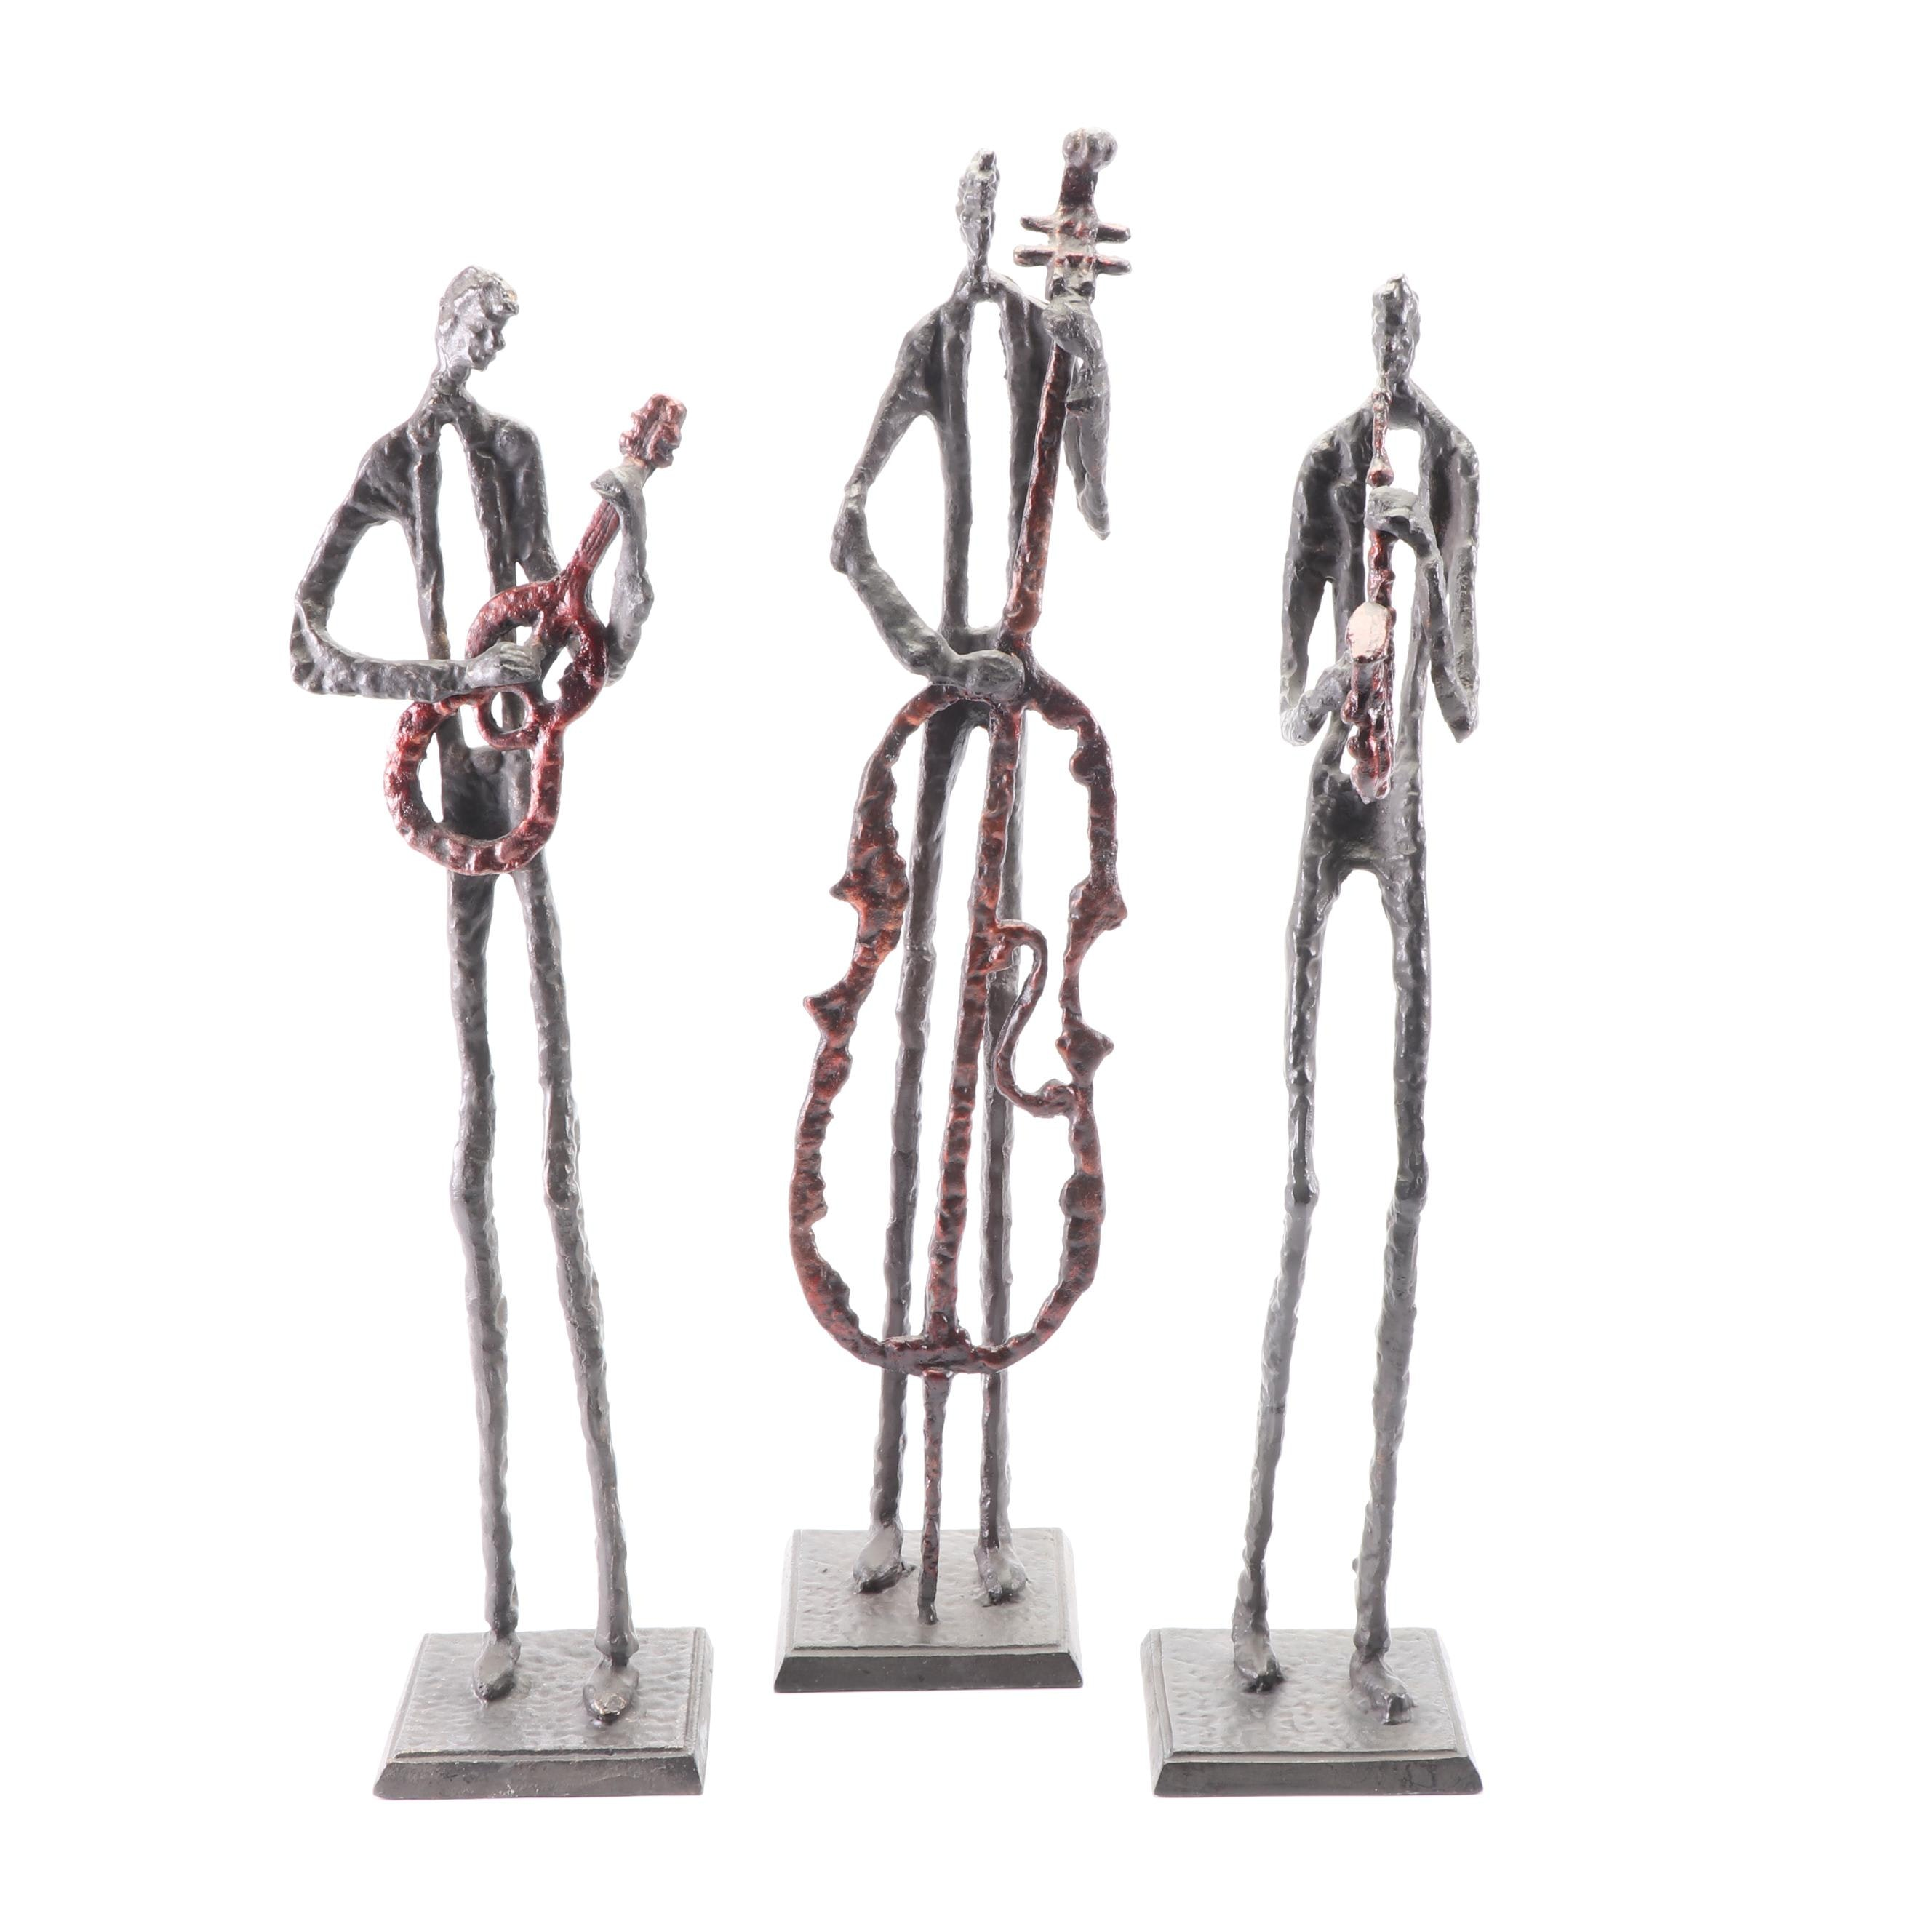 Cast Iron Jazz Trio Sculptures Playing Red Patinaed Instruments